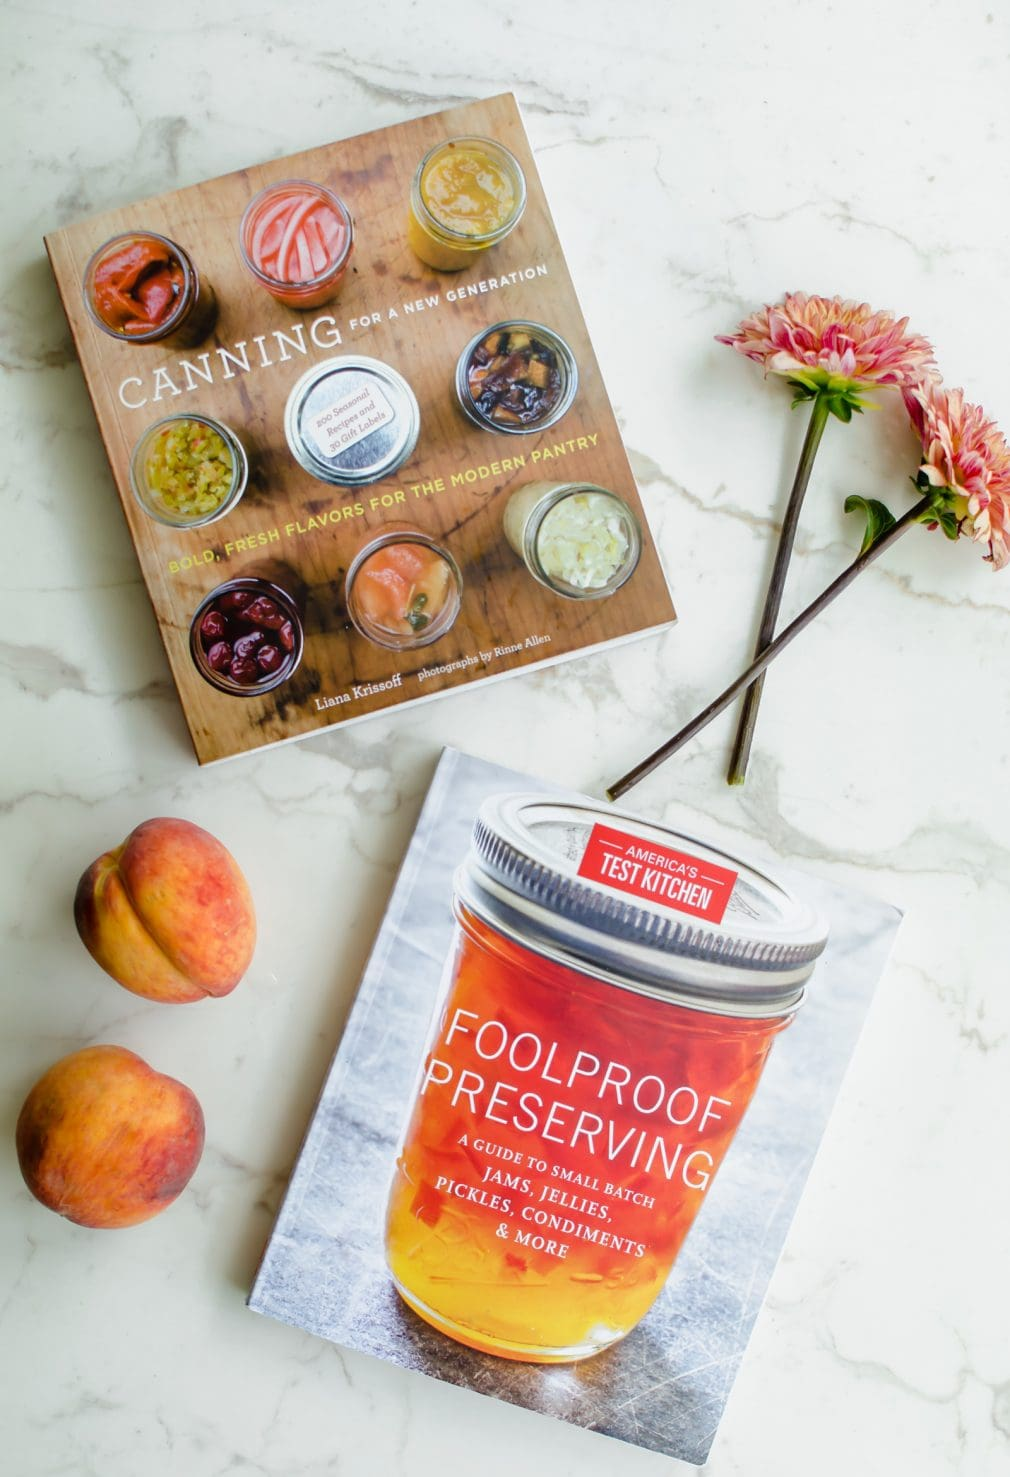 An overhead shot of two canning cookbooks with two dahlia flowers and fresh peaches on the side.